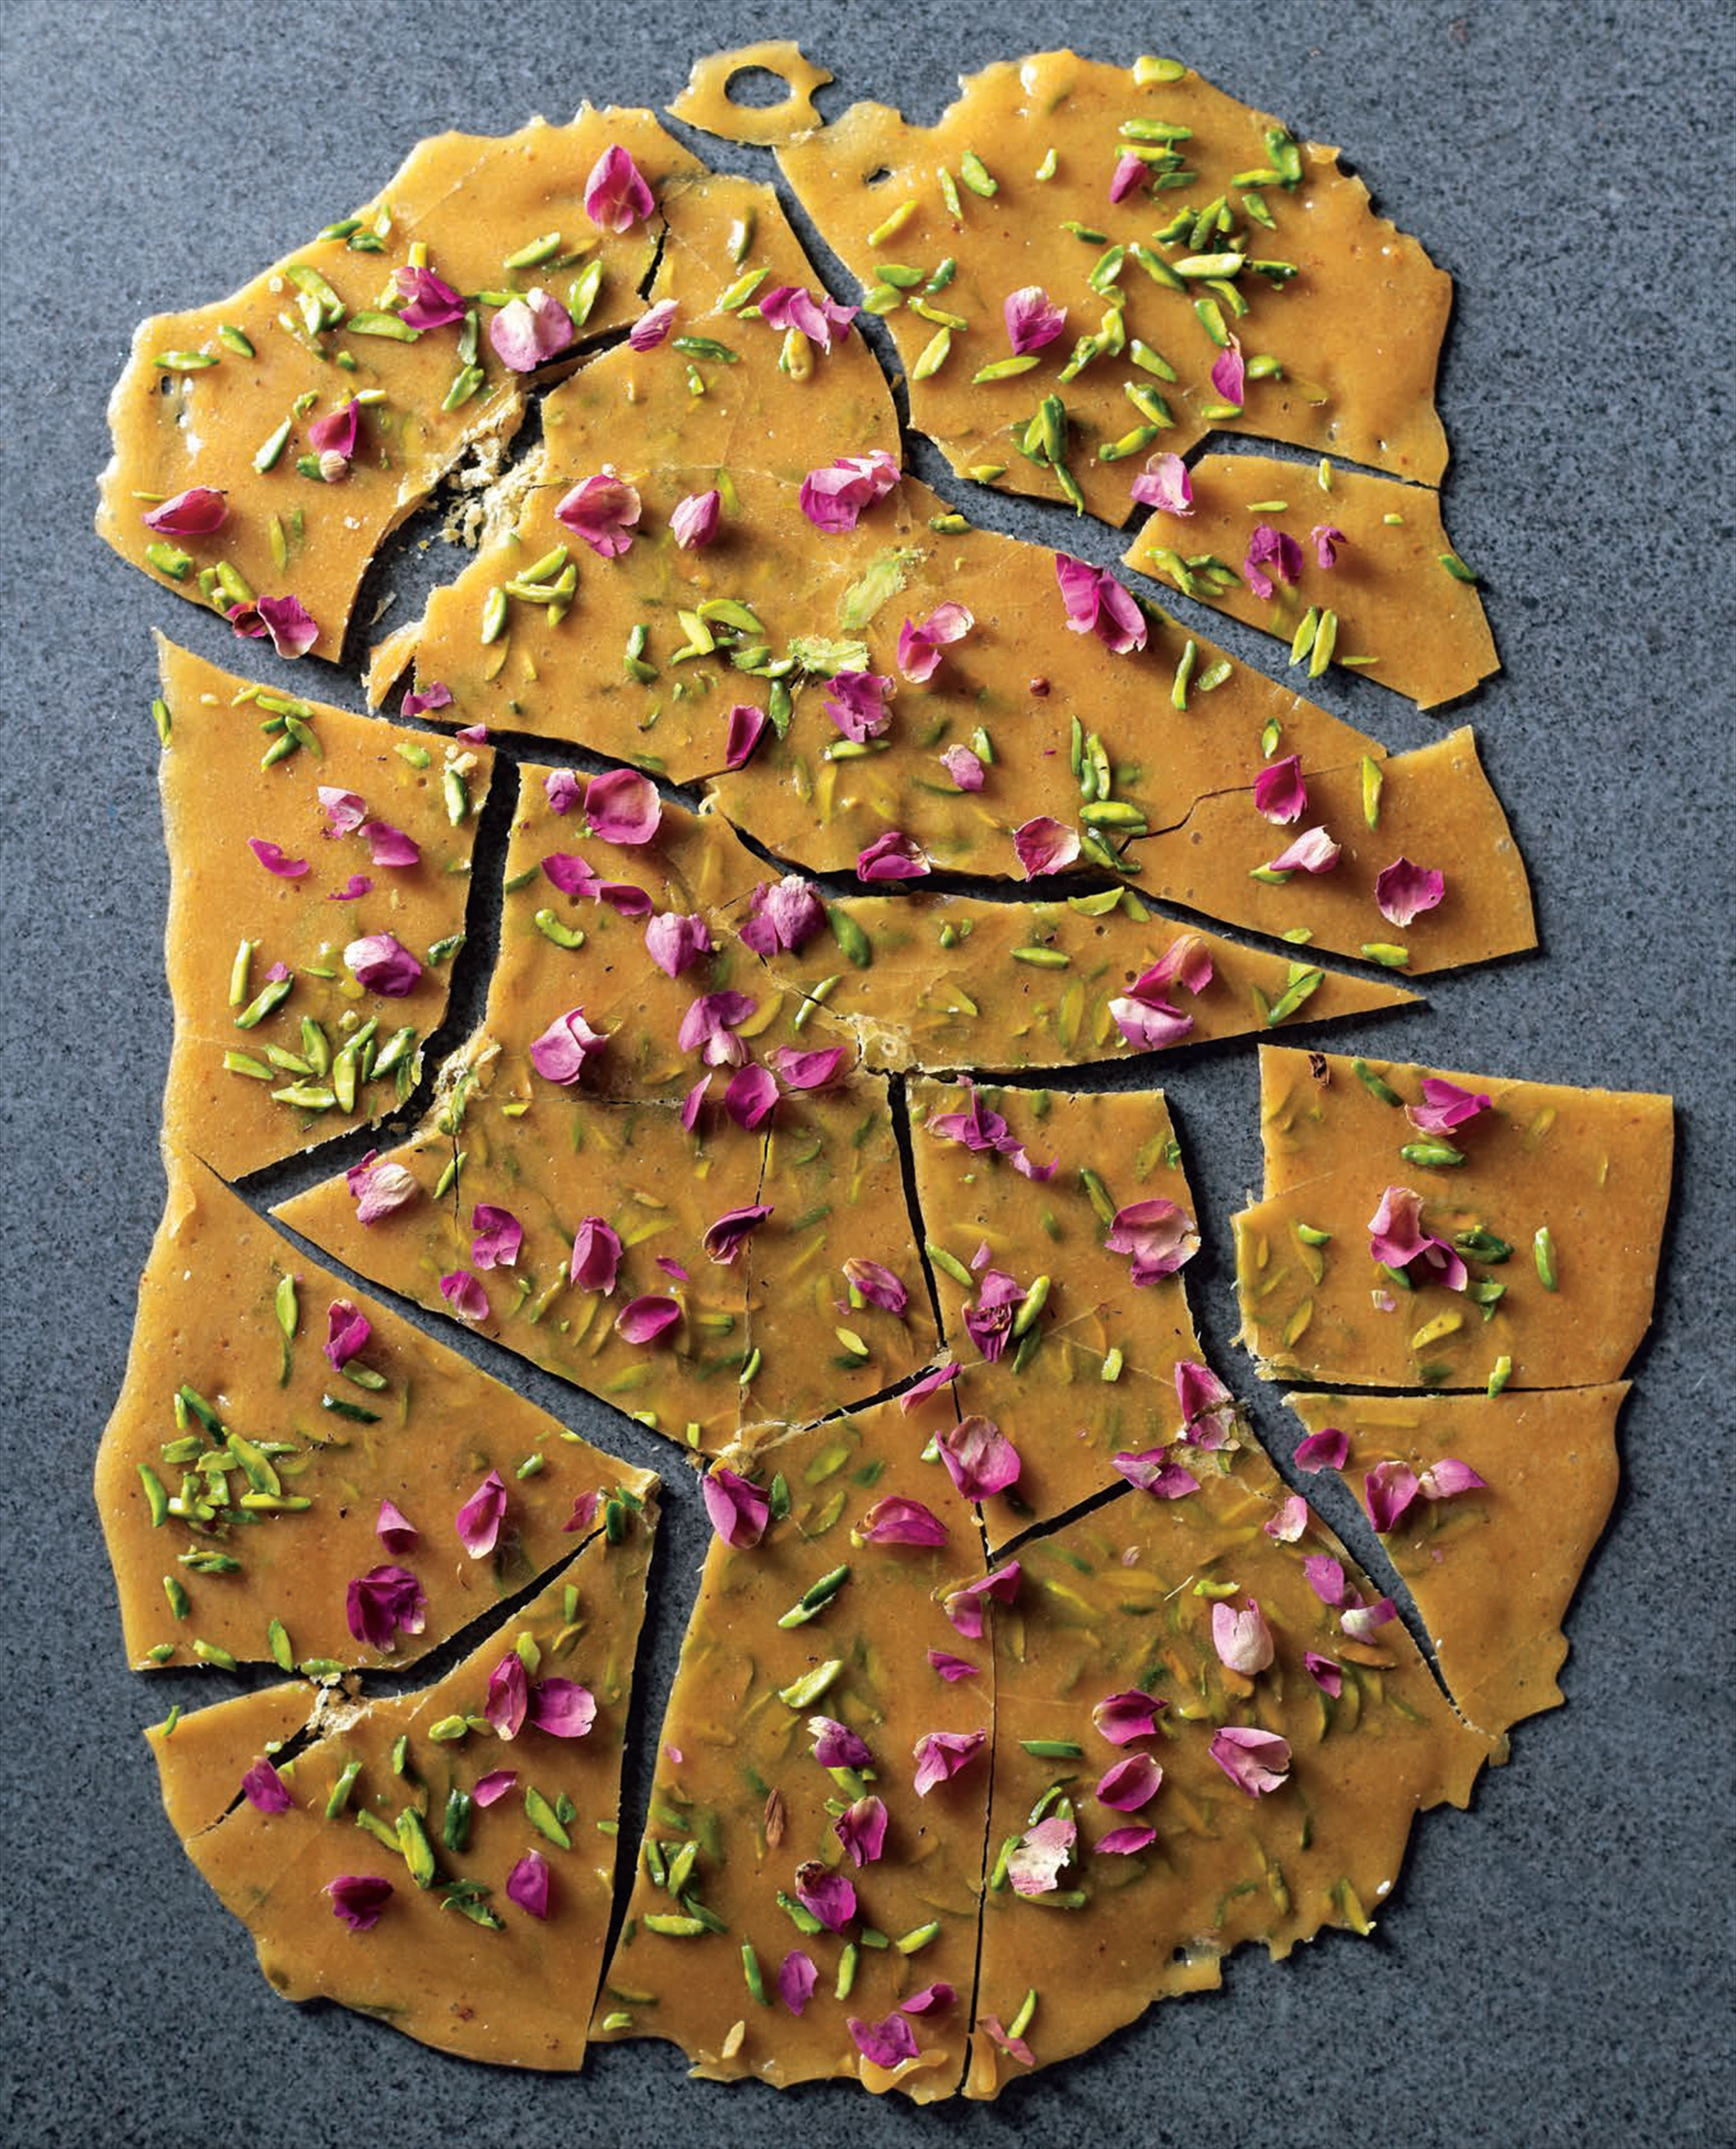 Pistachio–rose brittle